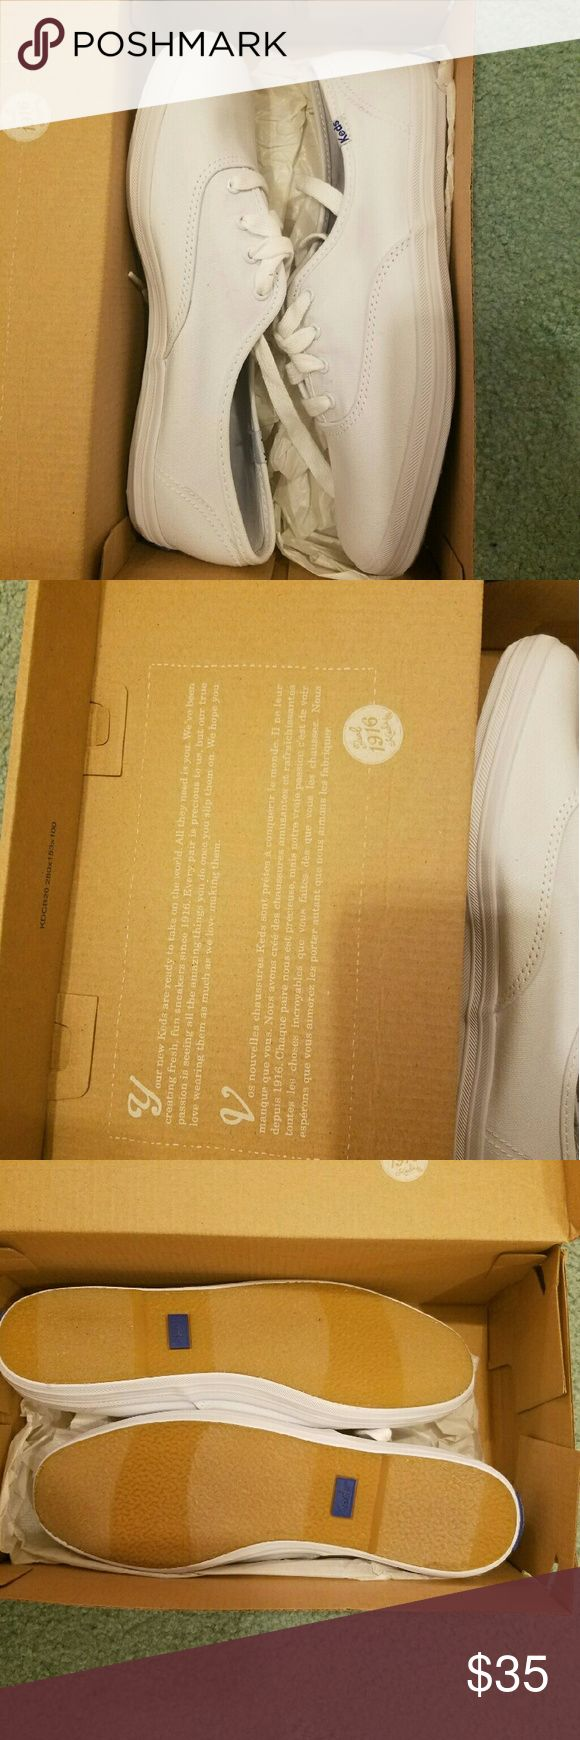 Brand new white Keds! Brand new white Keds I got a while back. They're super cute and comfy but alas, they're too small for my feet ): never worn, only tried on. MUST GO!! PLEASE MAKE OFFERS!!! Keds Shoes Sneakers